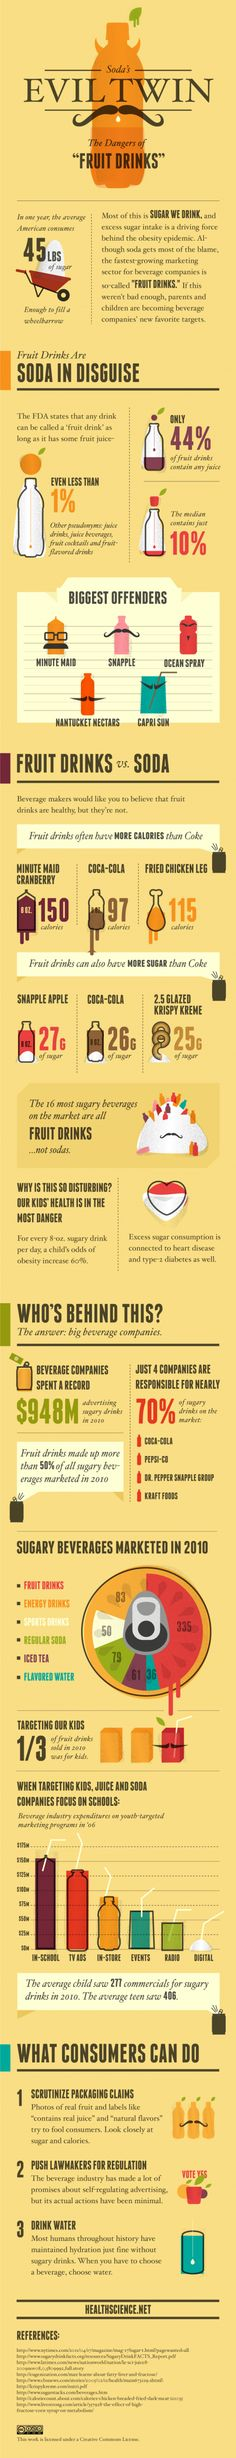 Infographic Sundays – The Soda's Evil Twin Edition - http://www.deliciousobsessions.com/2012/02/infographic-sundays-the-sodas-evil-twin-edition/